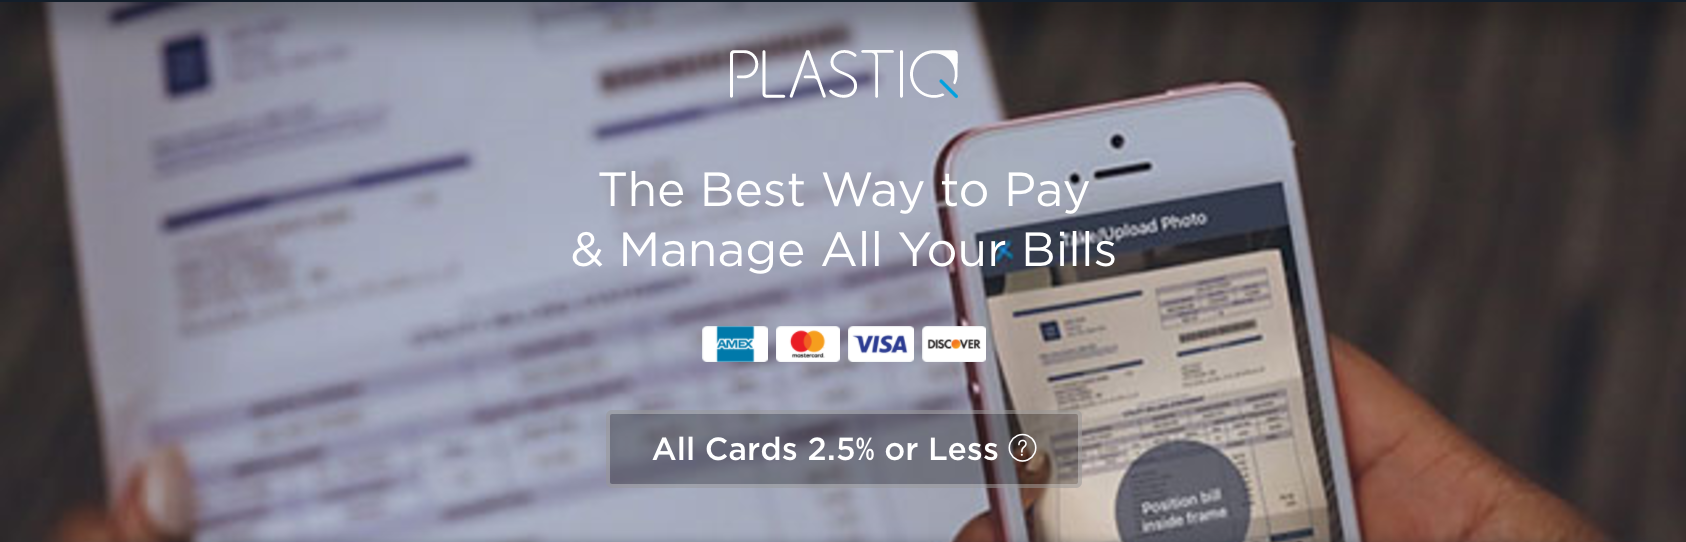 The Complete Guide To Plastiq: Pay Bills & Earn More Points